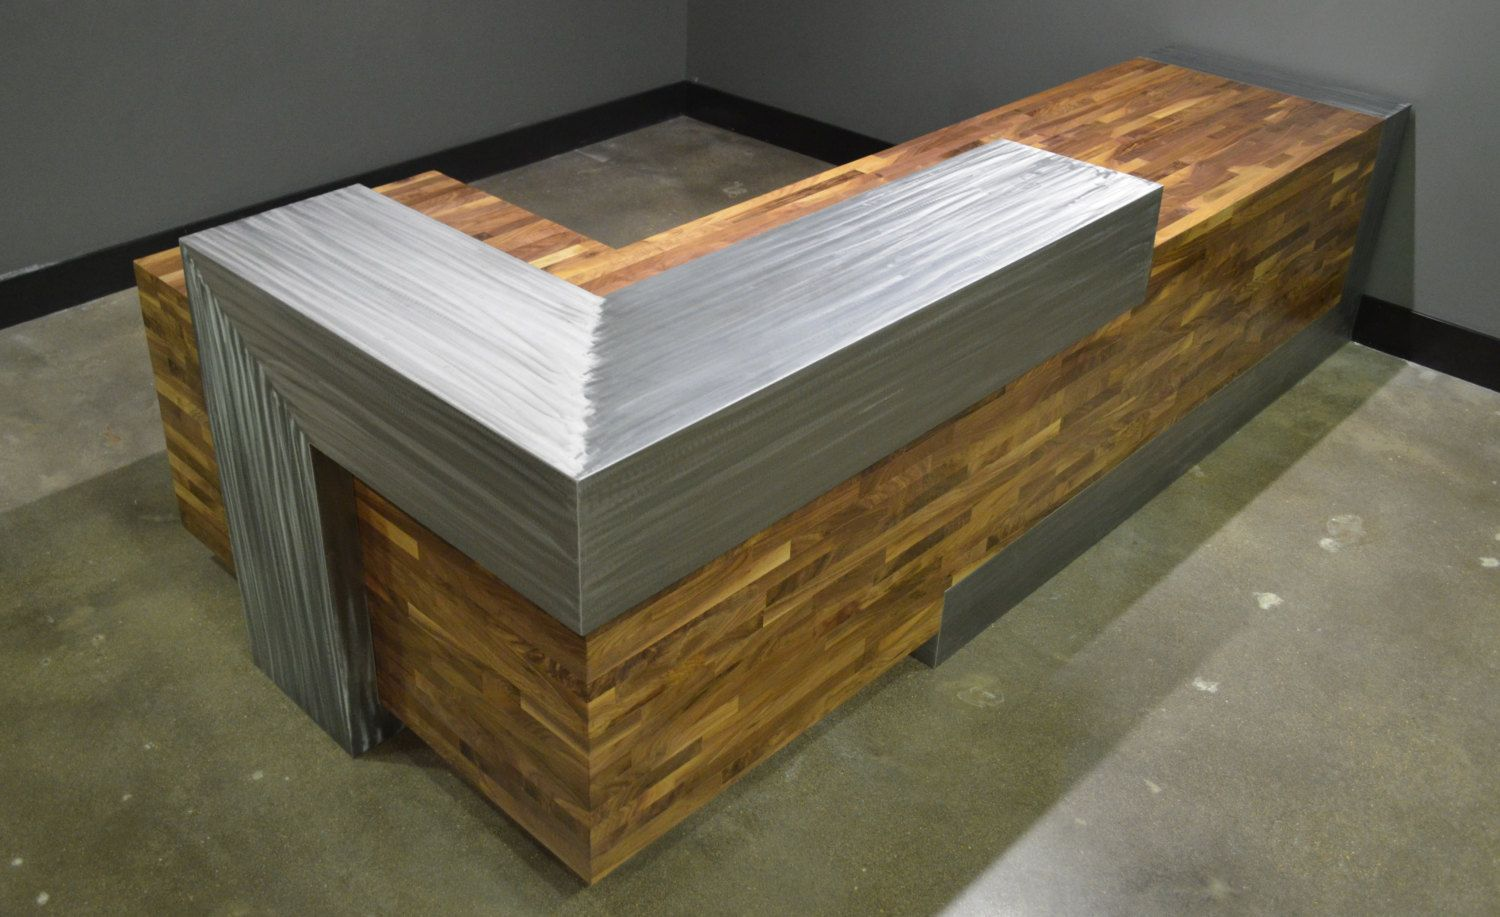 cool custom reception desk furniture | Buy a Hand Crafted Modern Reception Desk, made to order ...